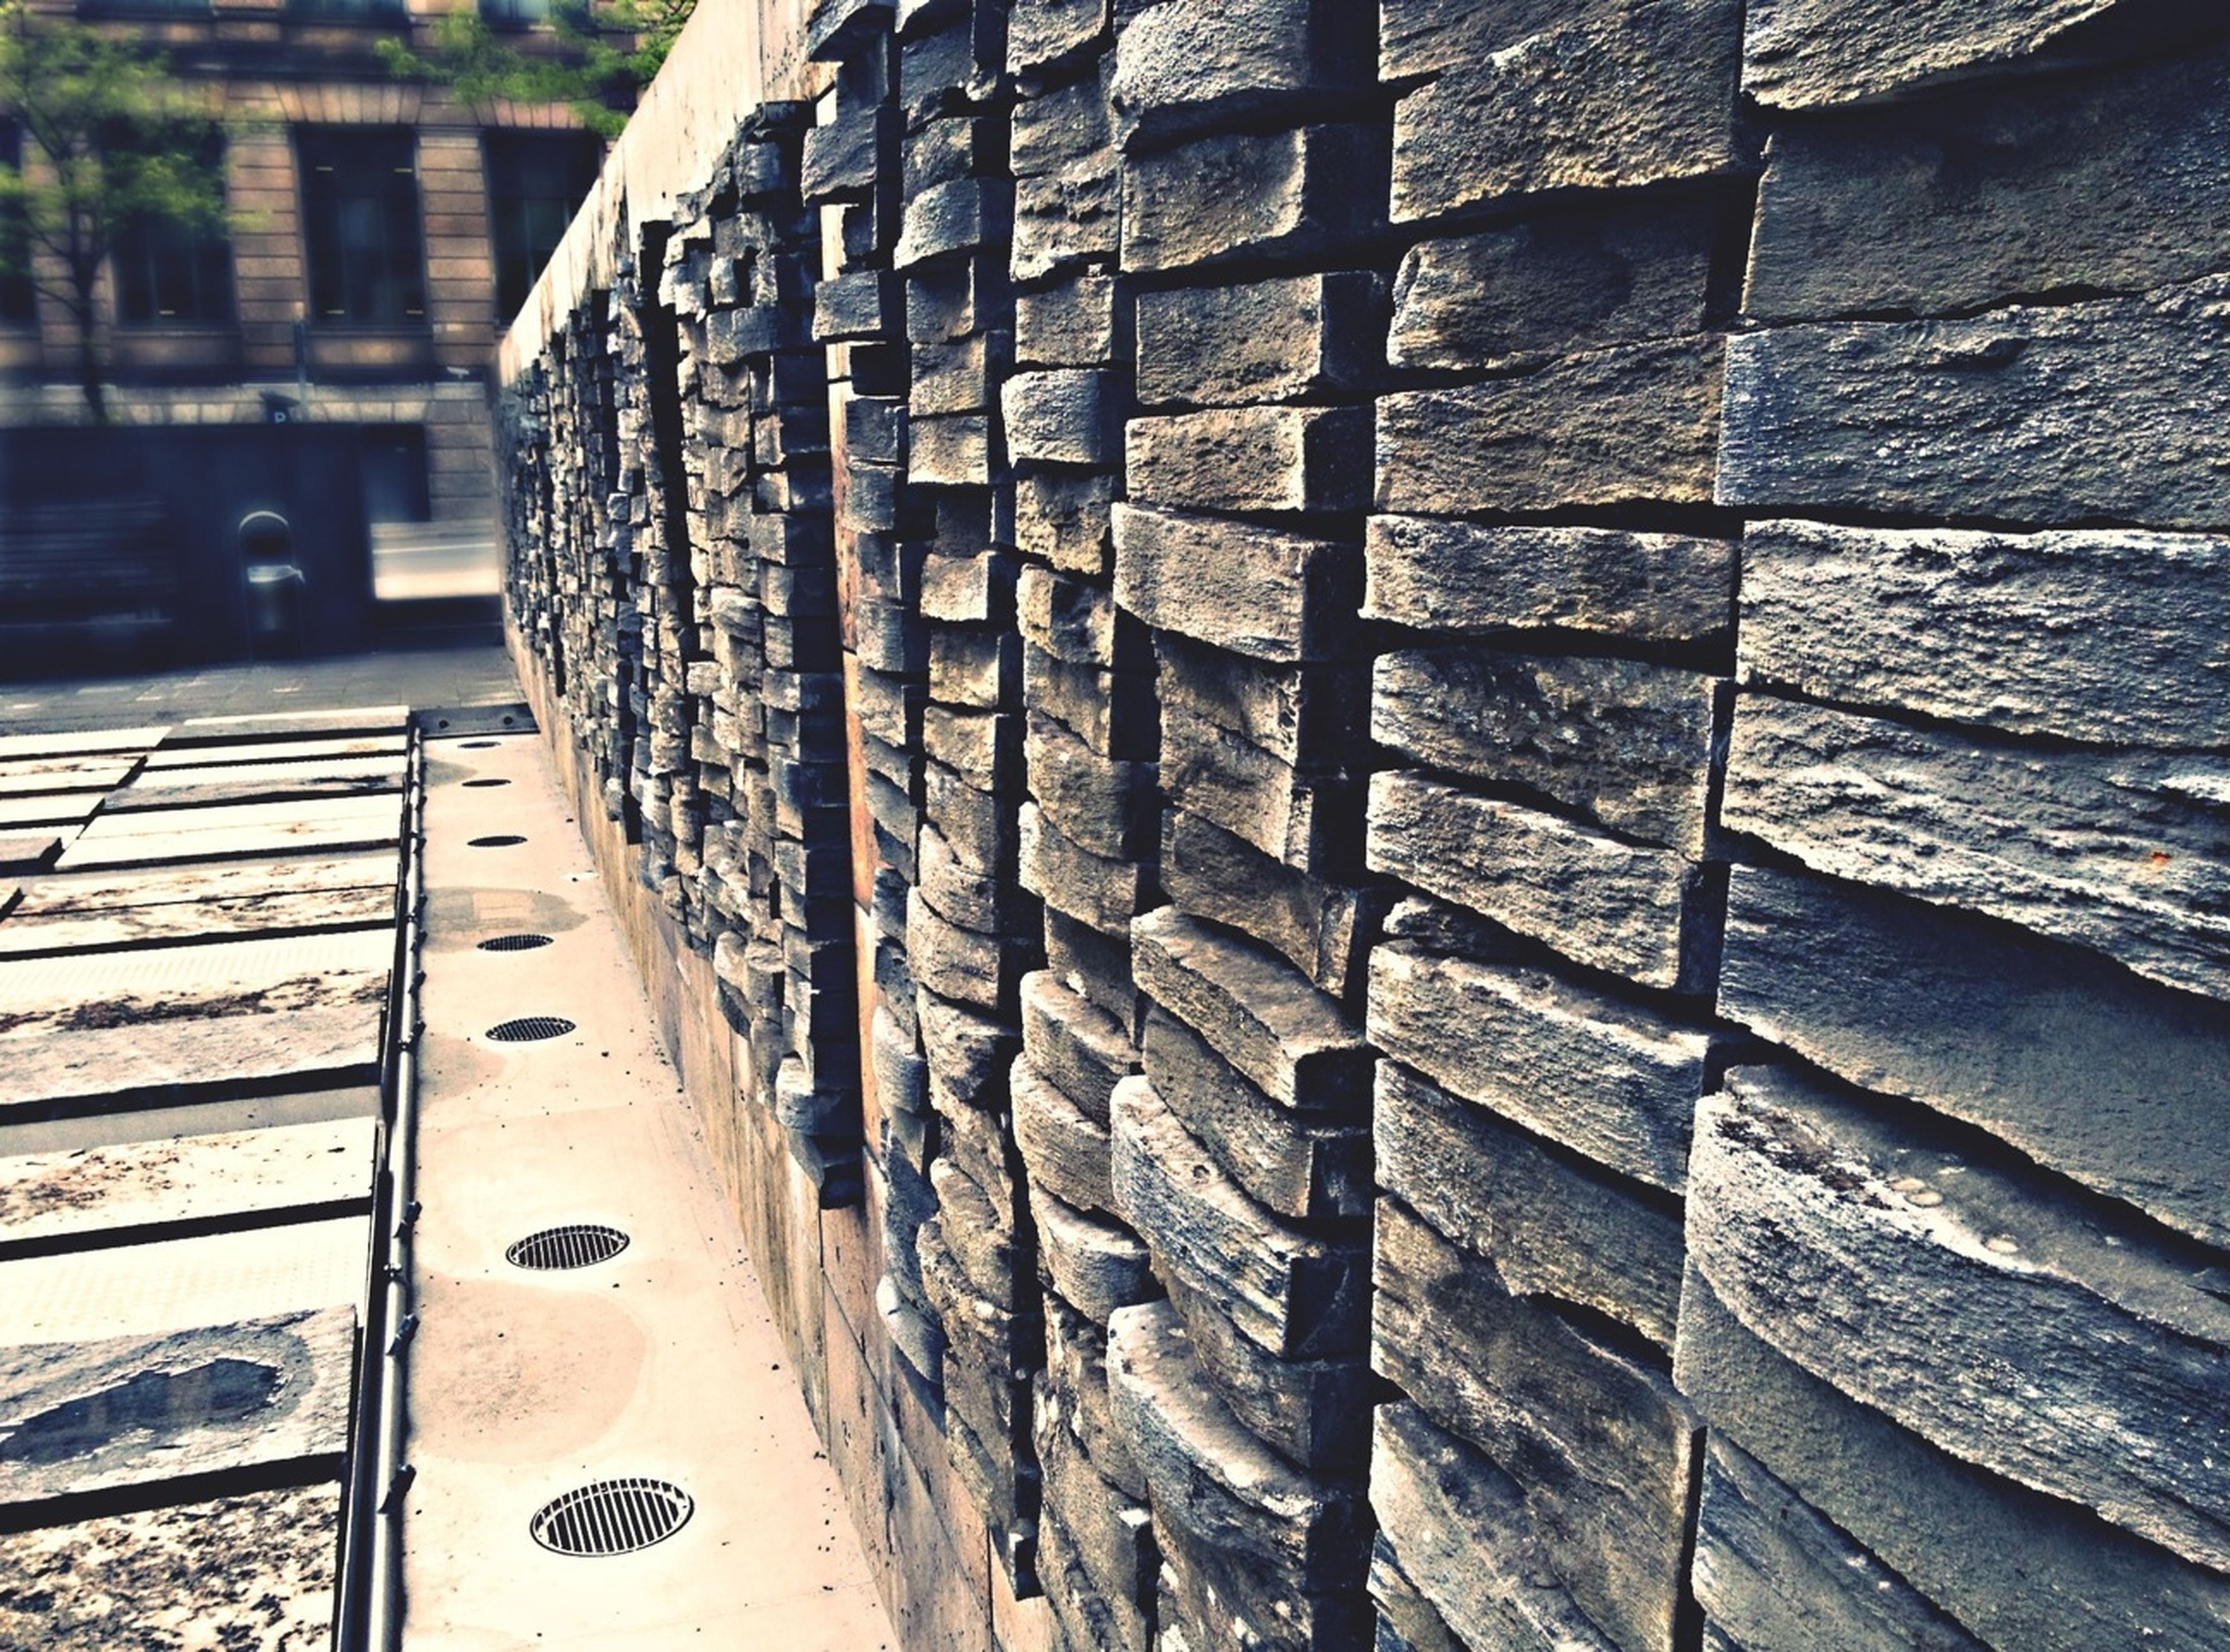 close-up, focus on foreground, transportation, textured, day, street, outdoors, wall - building feature, part of, cropped, metal, sidewalk, weathered, no people, sunlight, pattern, built structure, building exterior, wood - material, brick wall